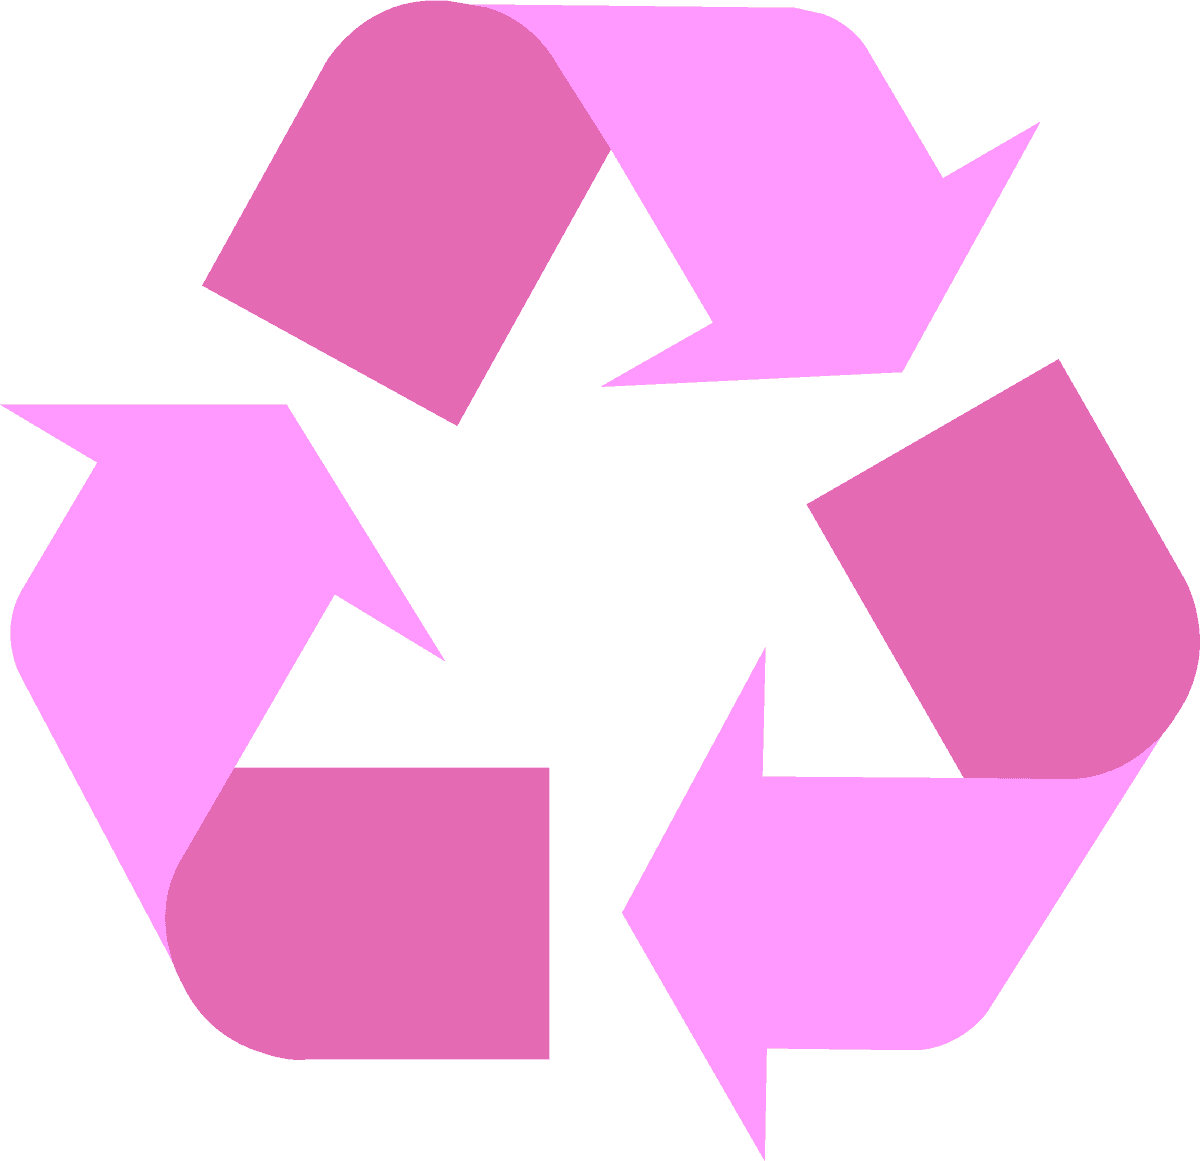 recycling-symbol-icon-twotone-pink